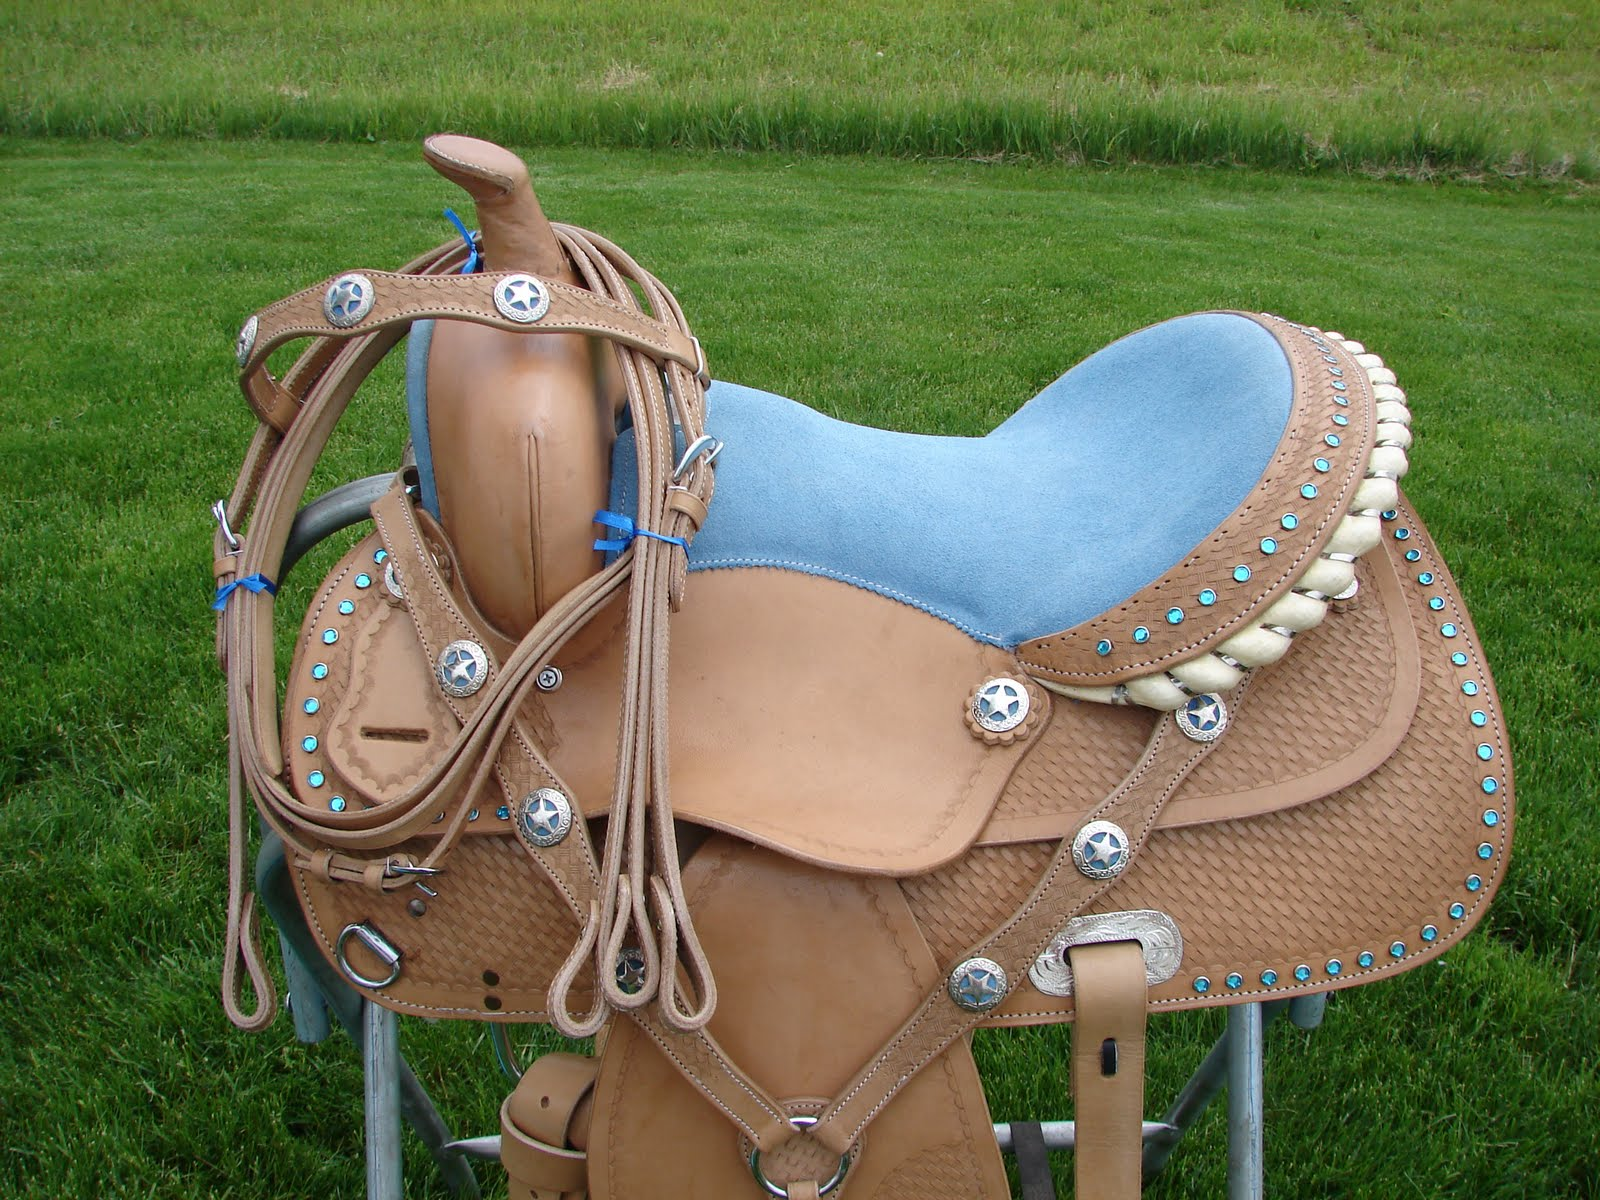 saddle and horse Eq is the first step in science-based saddlery, with technology based on horse  and rider biomechanics and endorsed by vets and riders alike.